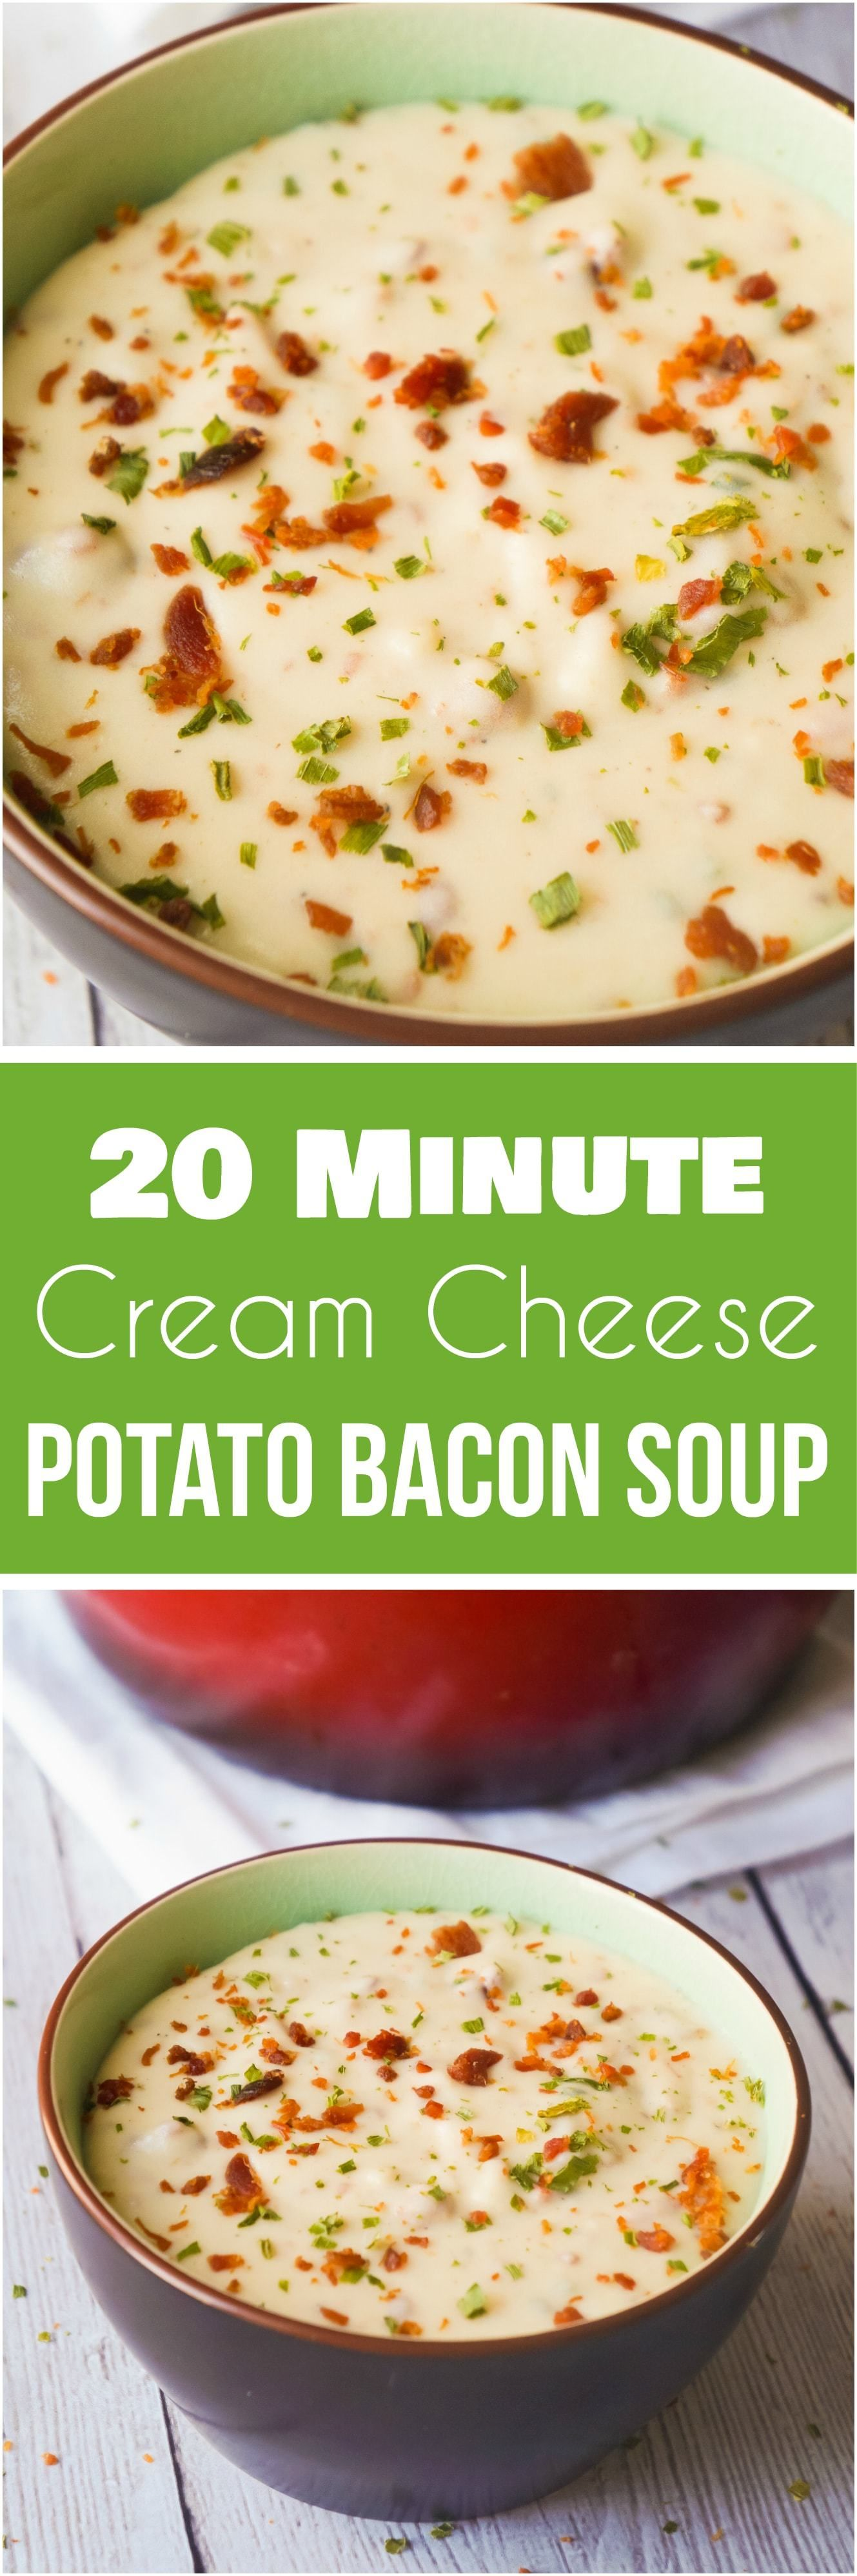 Cream cheese potato bacon soup is an easy winter comfort food recipe cream cheese potato bacon soup is an easy winter comfort food recipe this easy potato forumfinder Choice Image